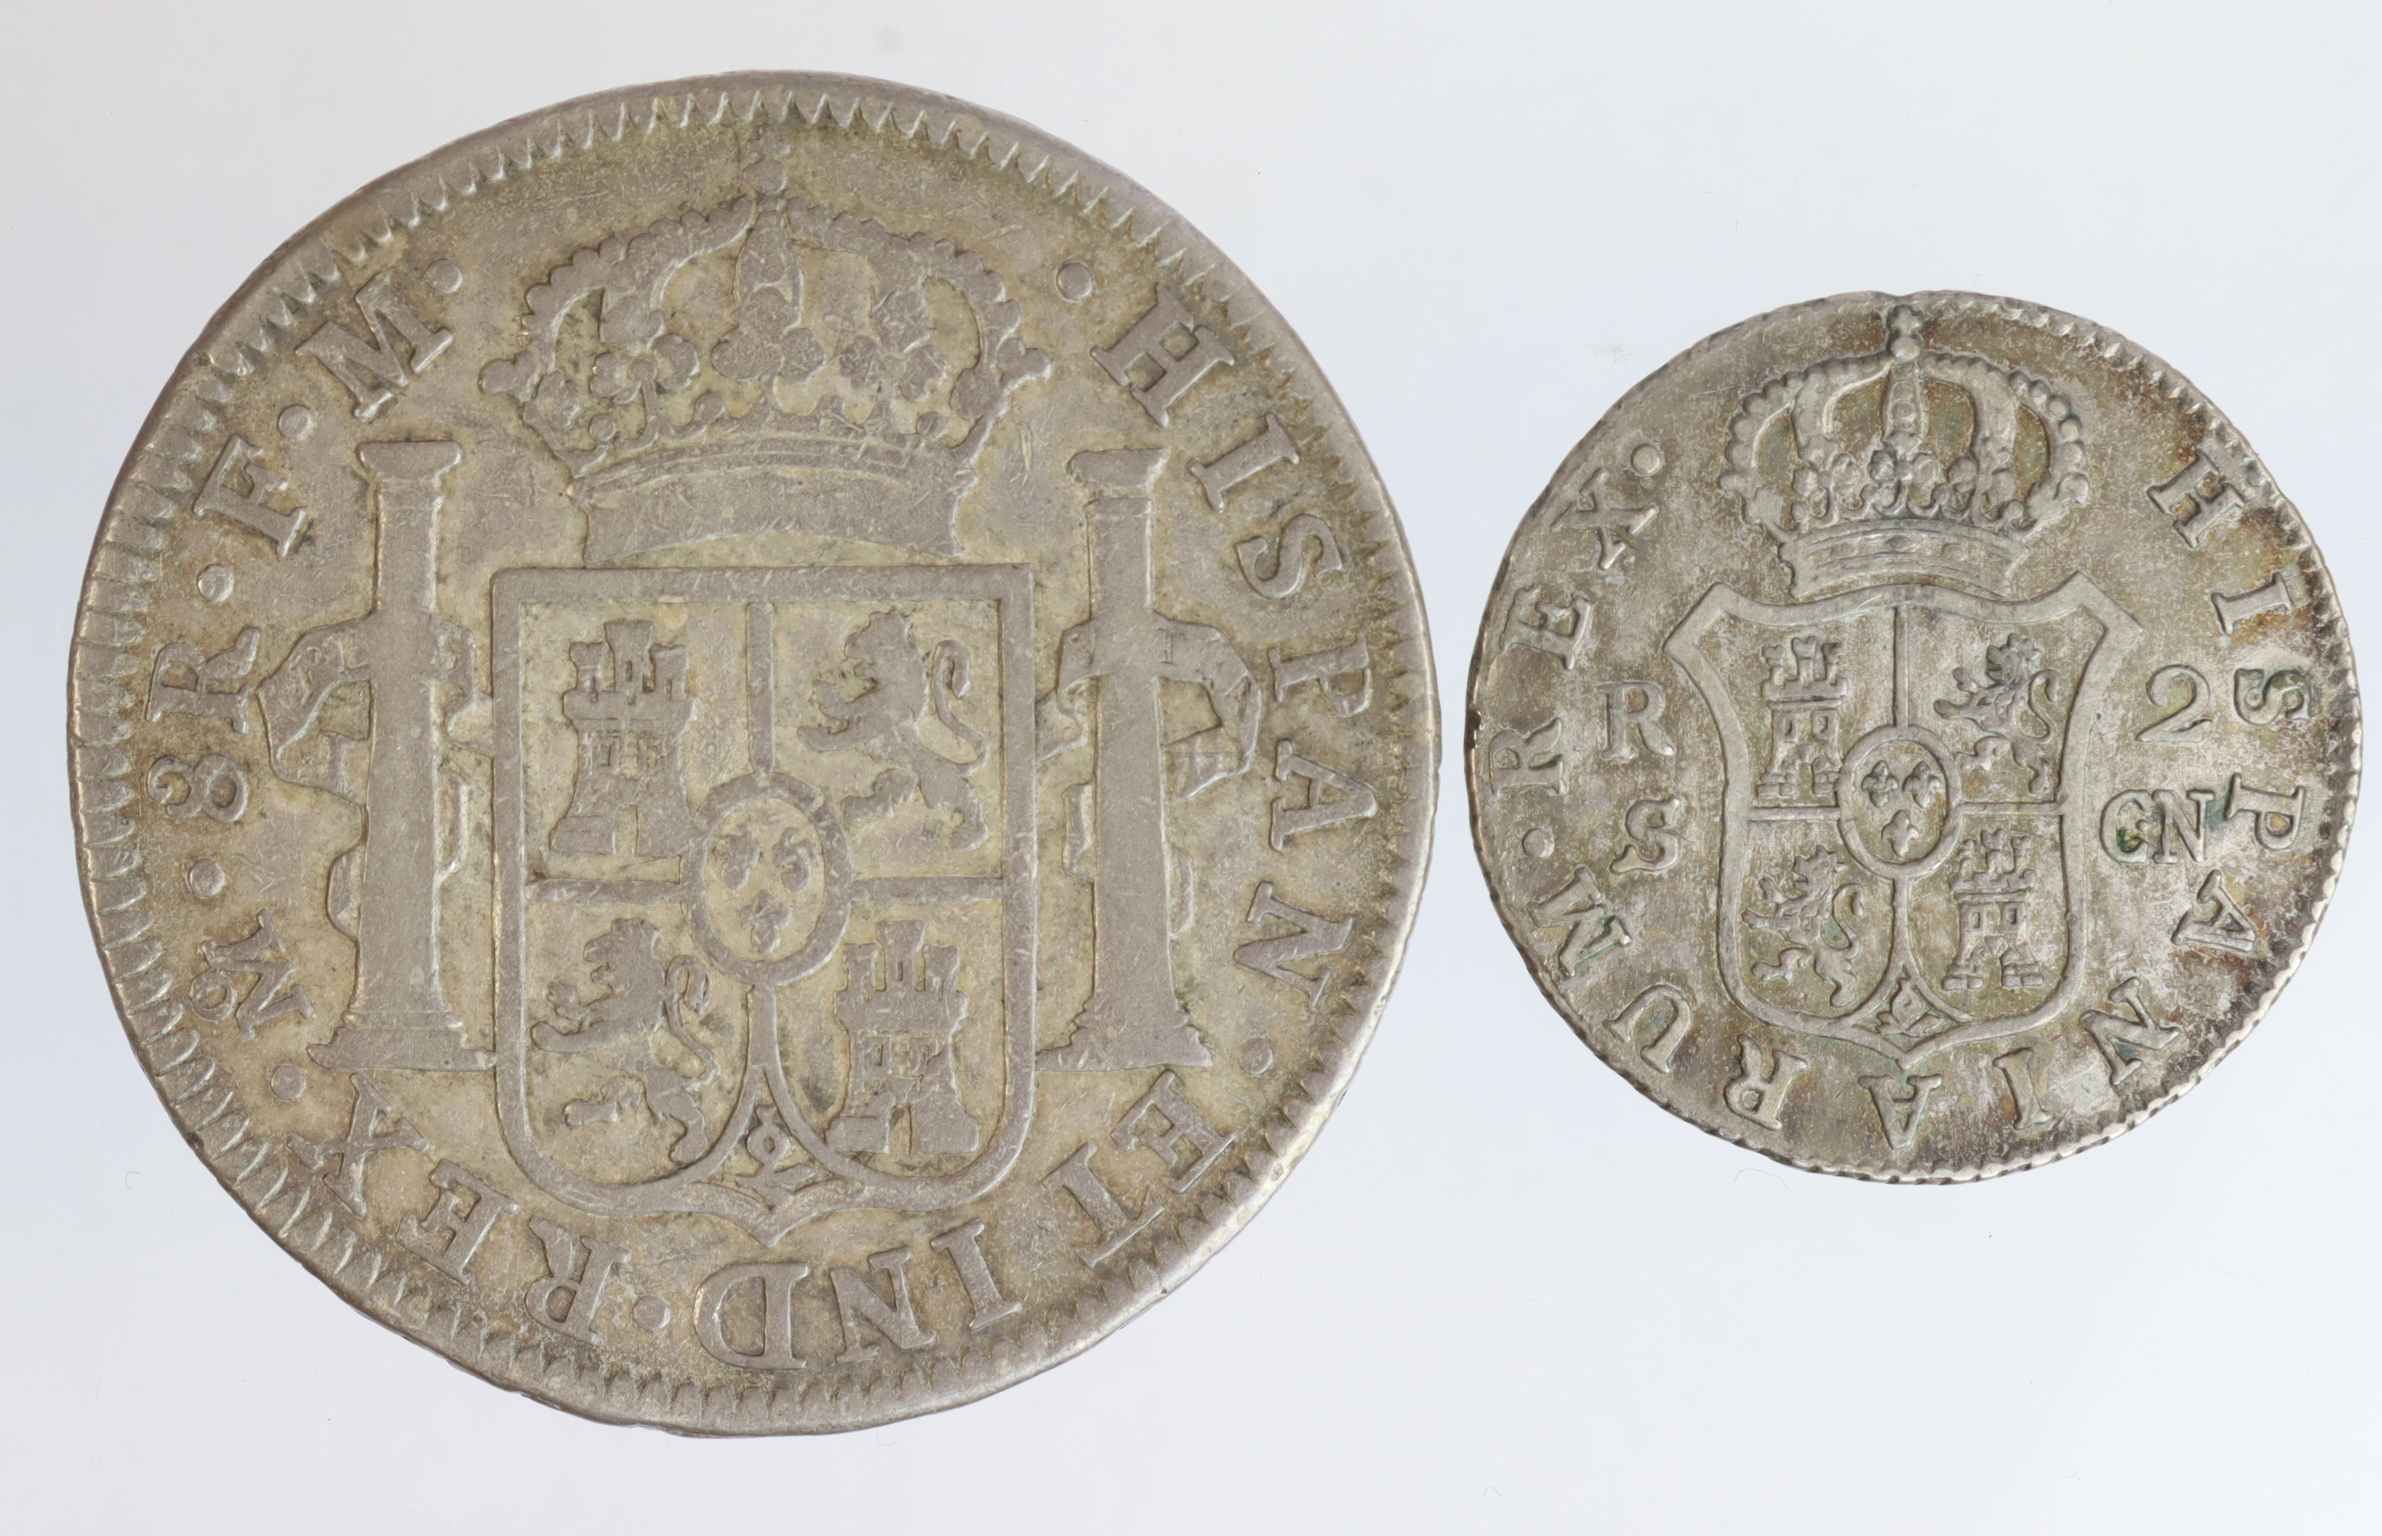 Spanish Colonial Silver (2): Mexico 8 Reales 1795 Mo FM, nVF, and Chile 2 Reales 1793 S C.N, aVF - Image 2 of 2